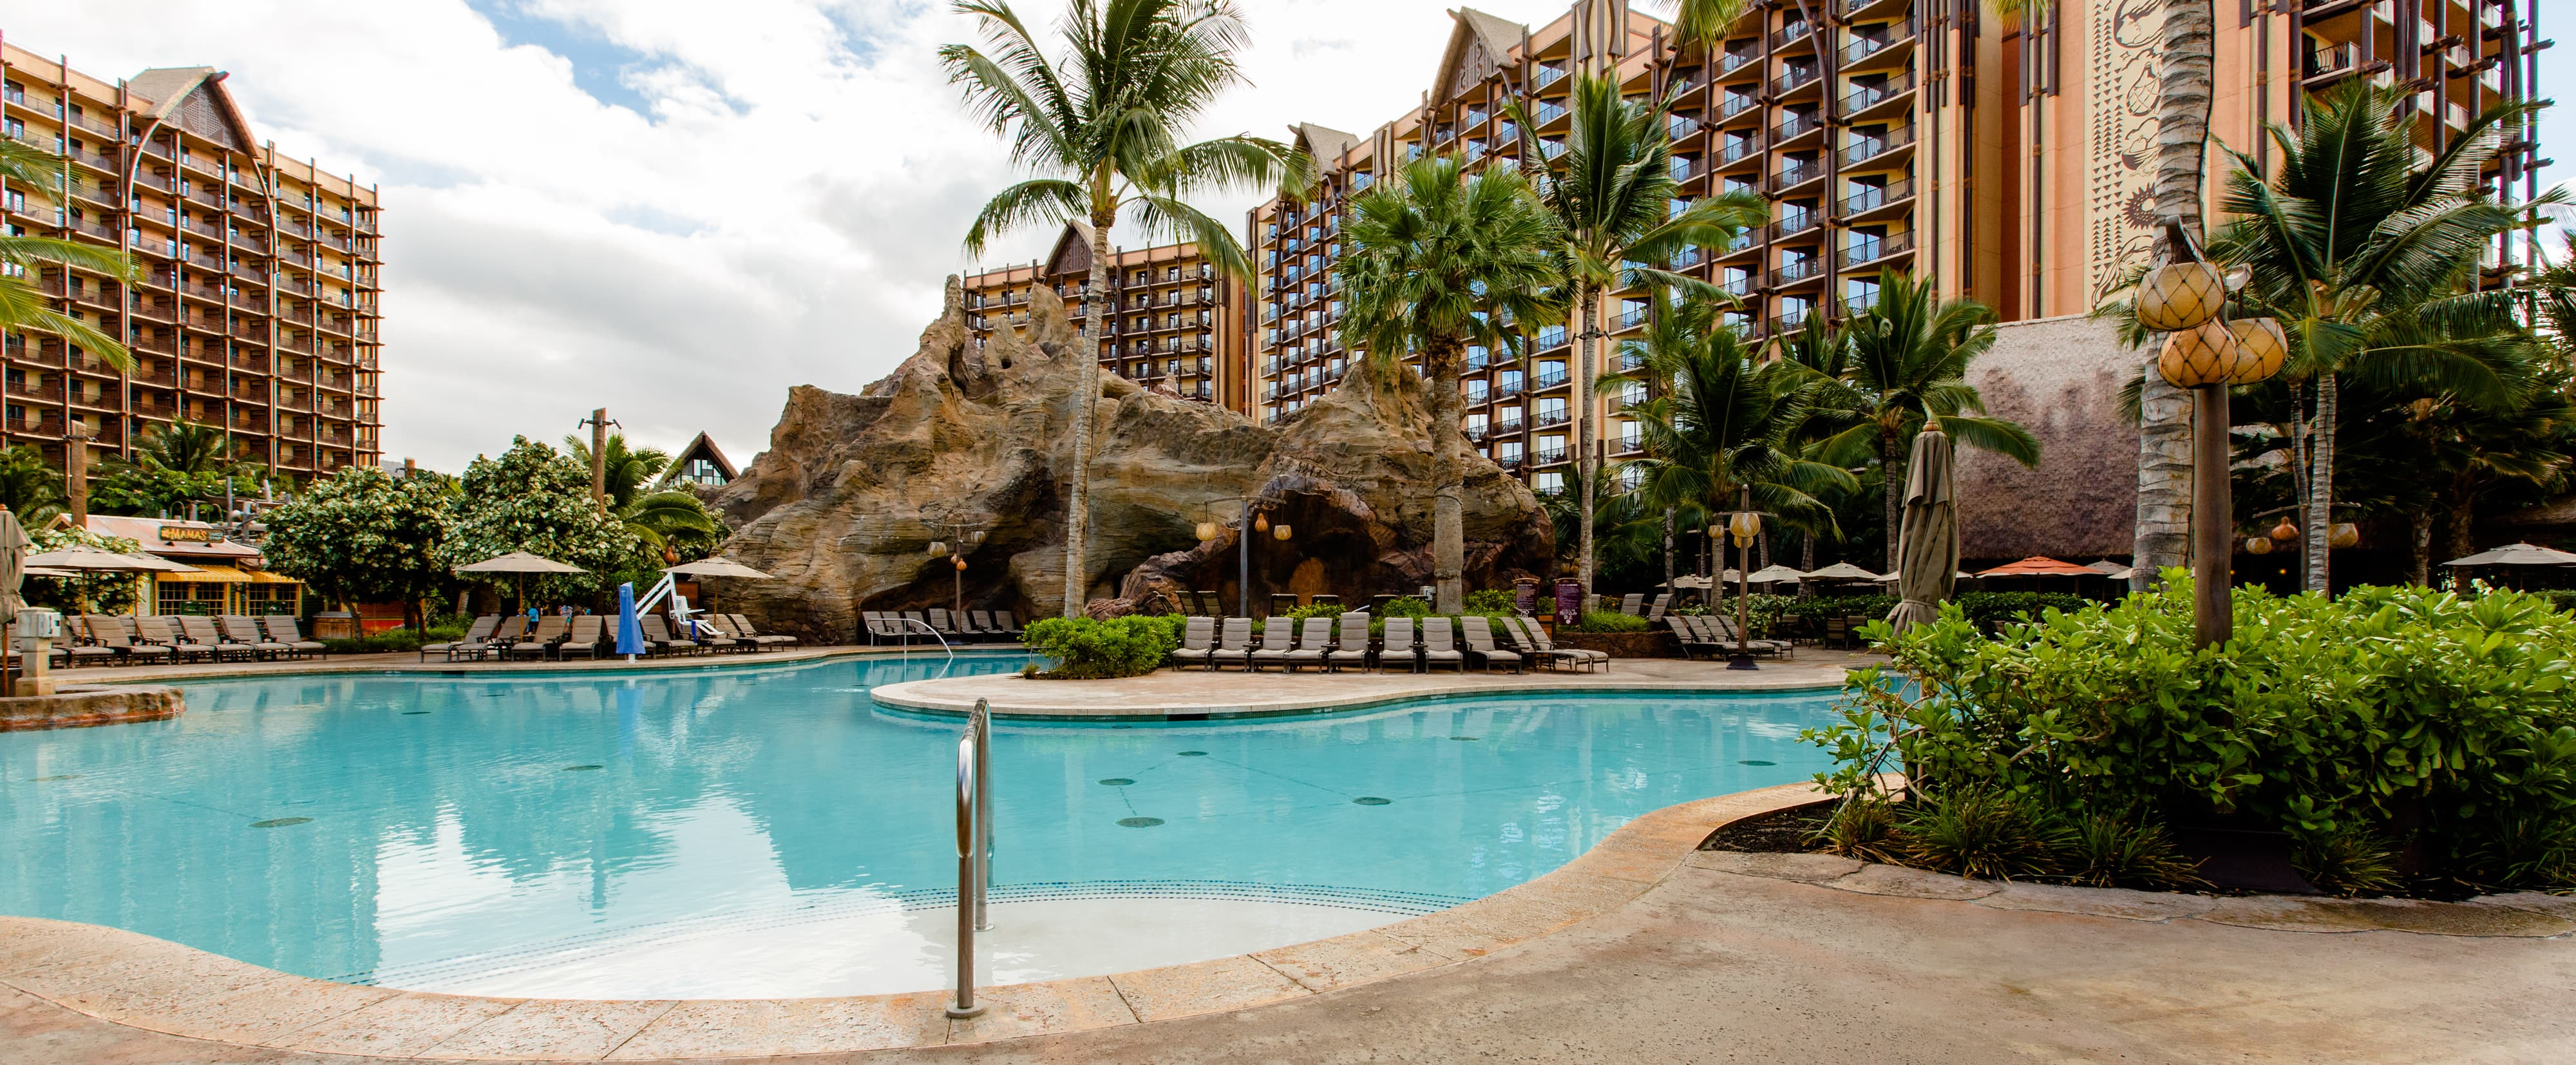 A section of Waikolohe Pool with rock caves, sunbathing areas and palm trees